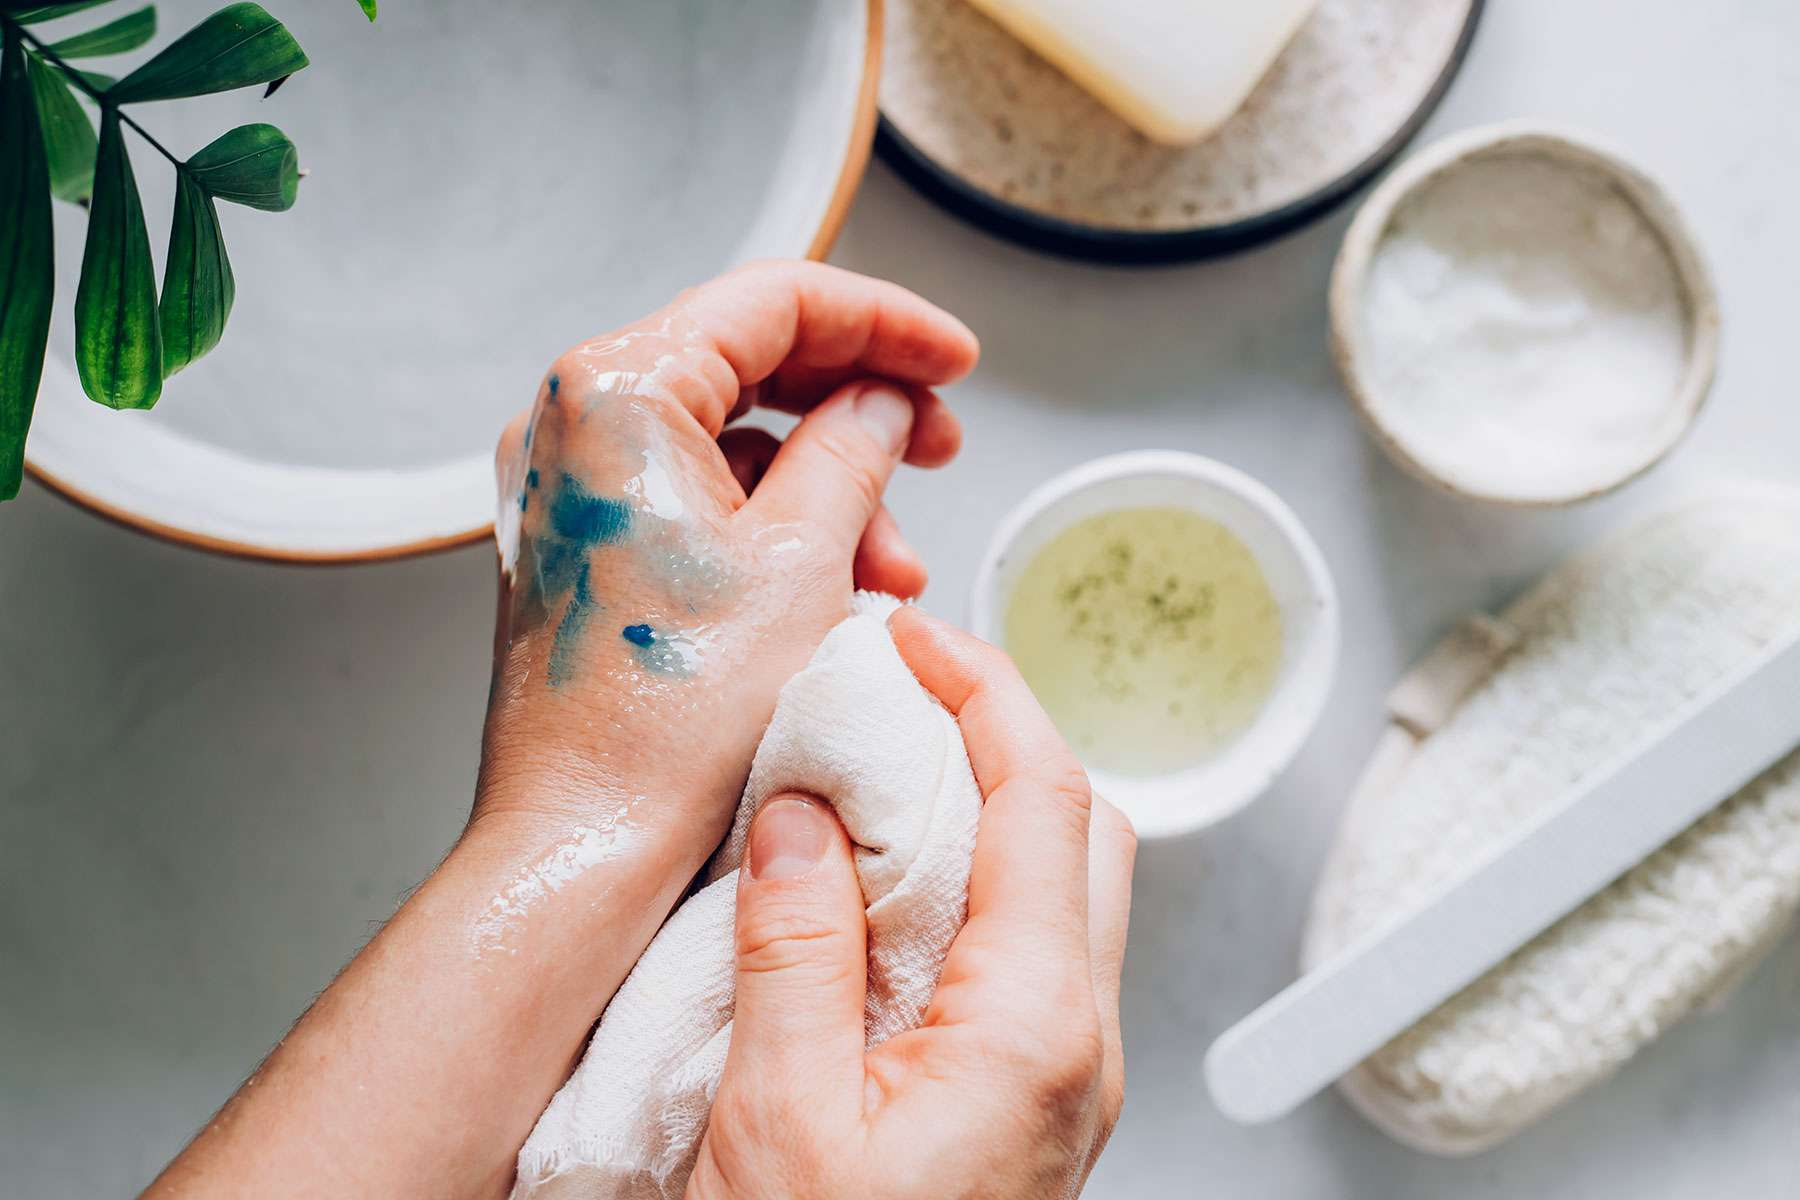 Oil-based paint removed from hand with vegetable oil with white cloth